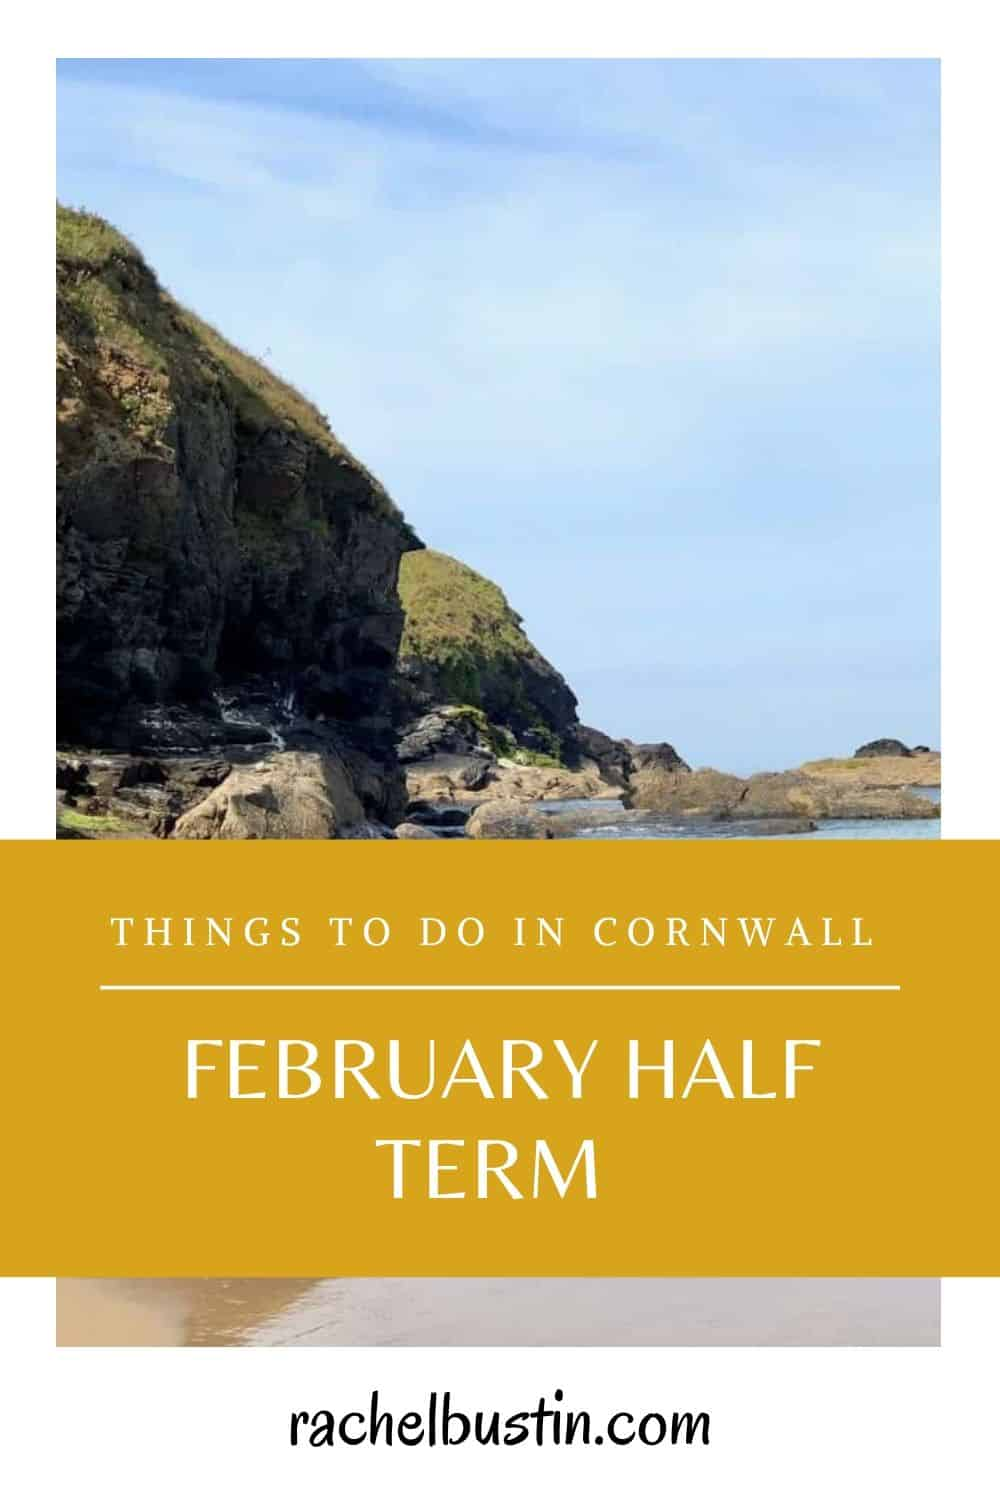 Things-to-do-in-Cornwall-February-Half-Term-